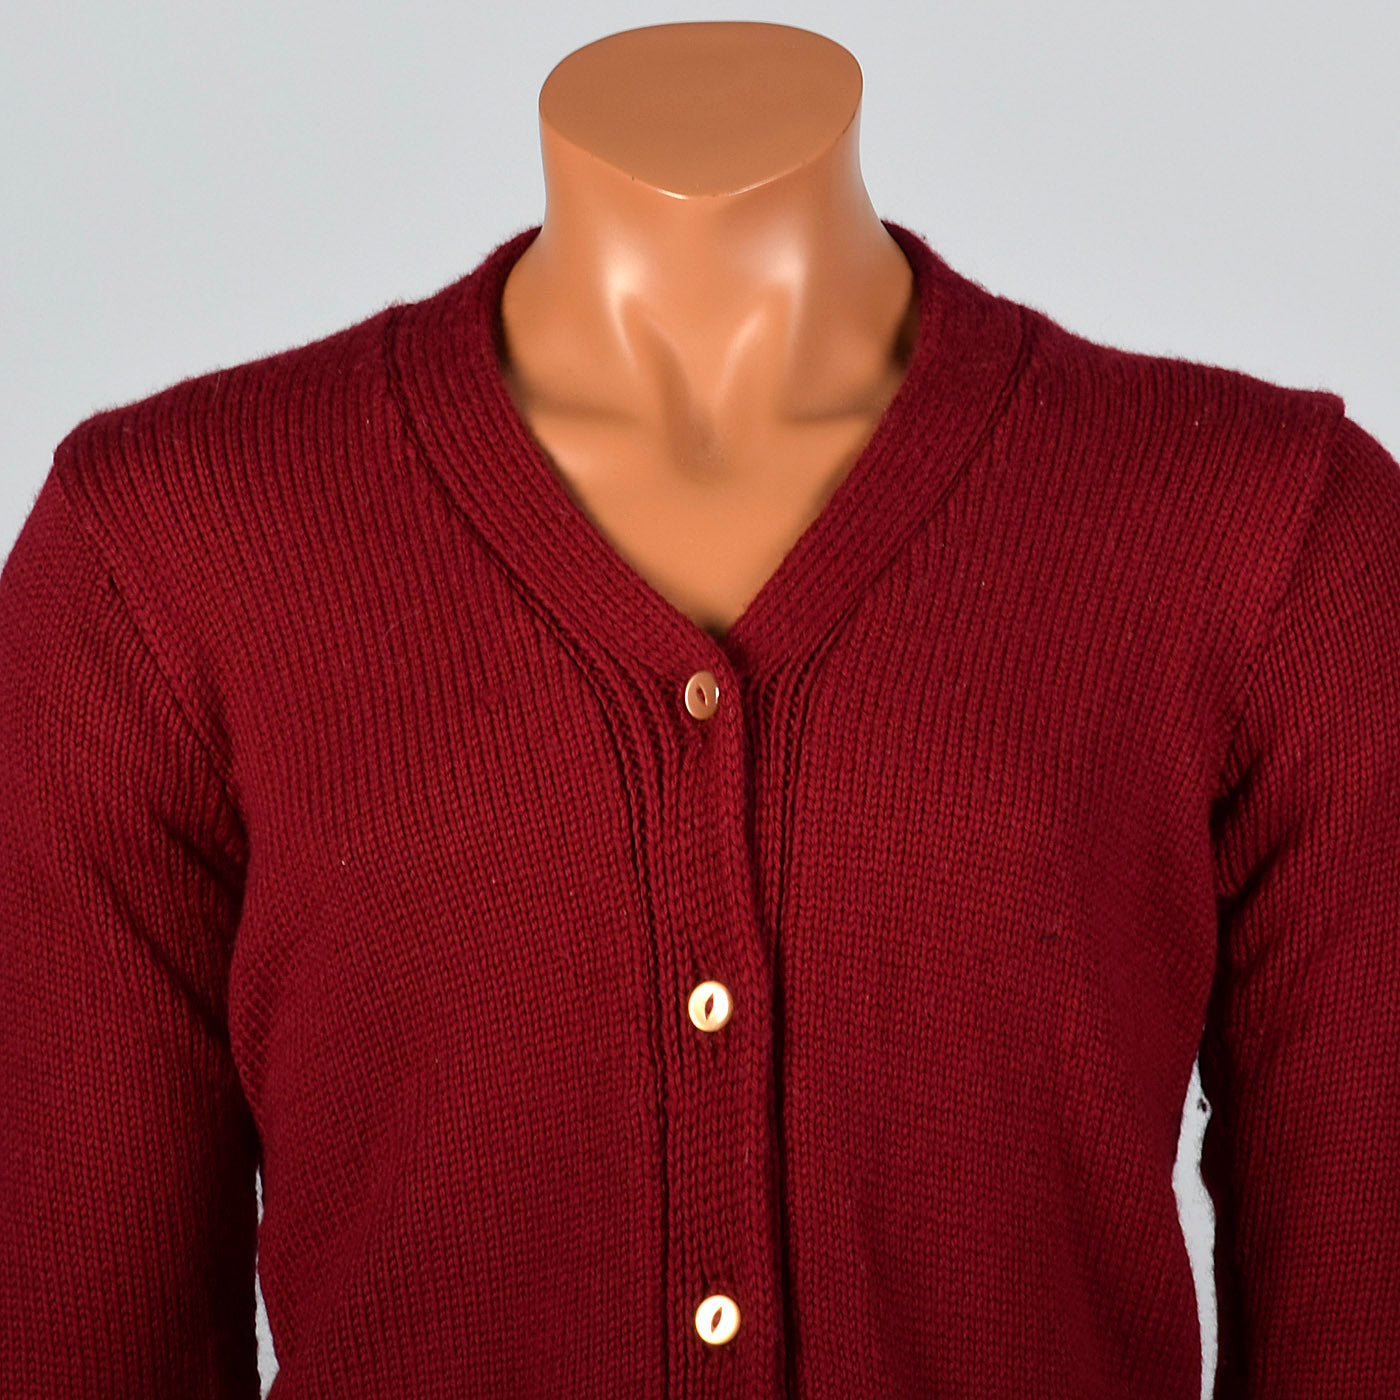 1940s Mens Burgundy Knit Cardigan